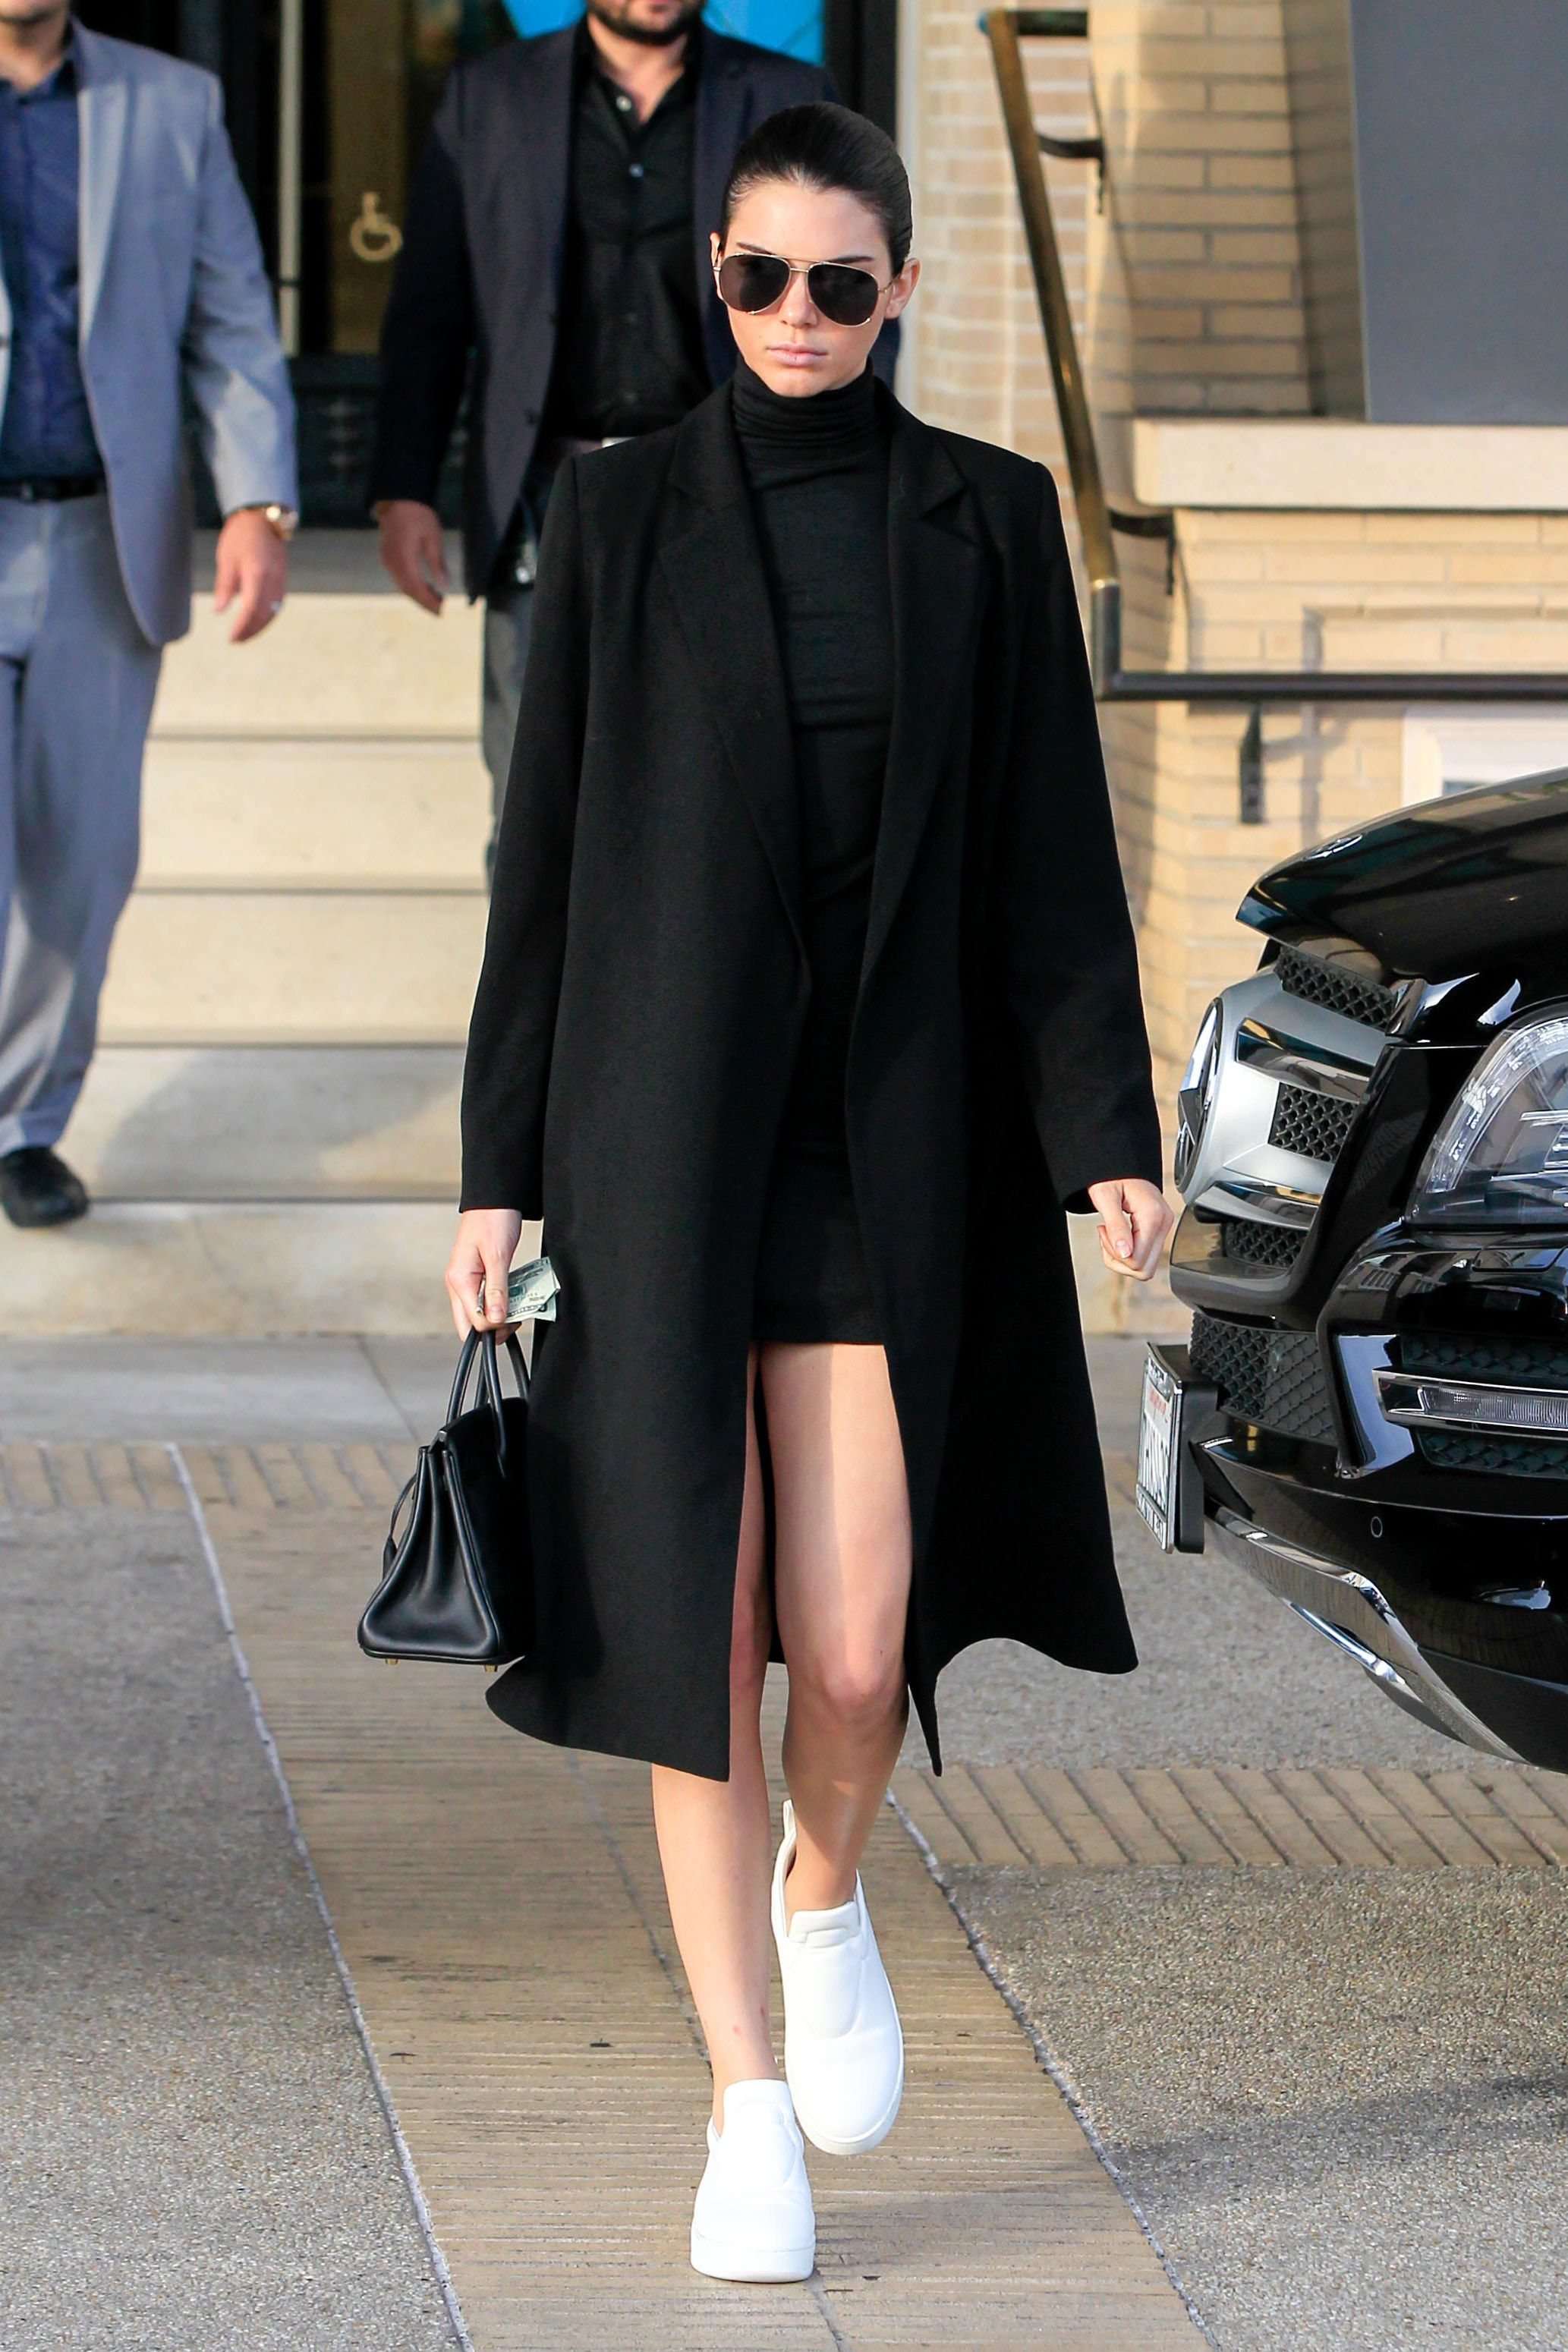 13a8d09767e8 The Fashion Evolution of Kendall Jenner  From Reality TV Star to ...